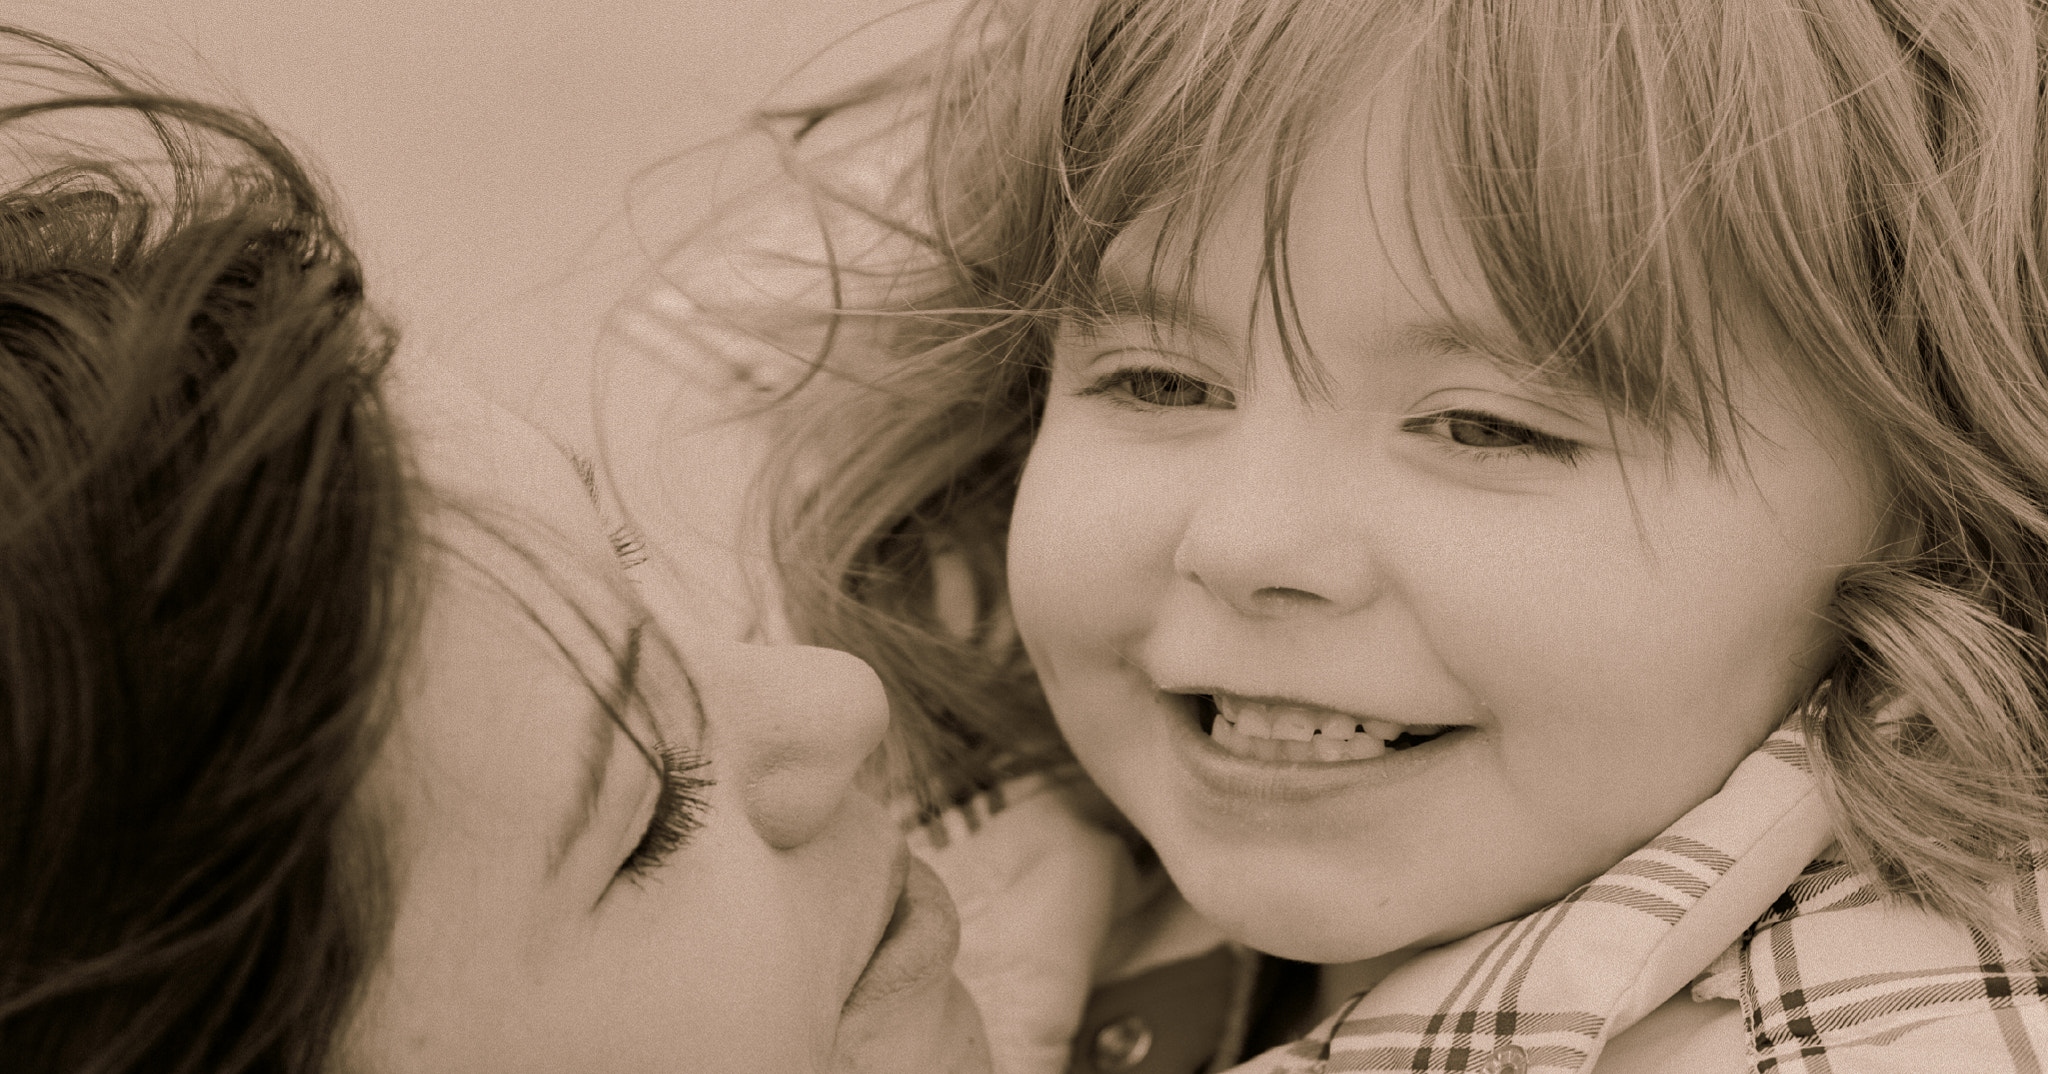 Photograph Just for the smile by Austen Haines on 500px